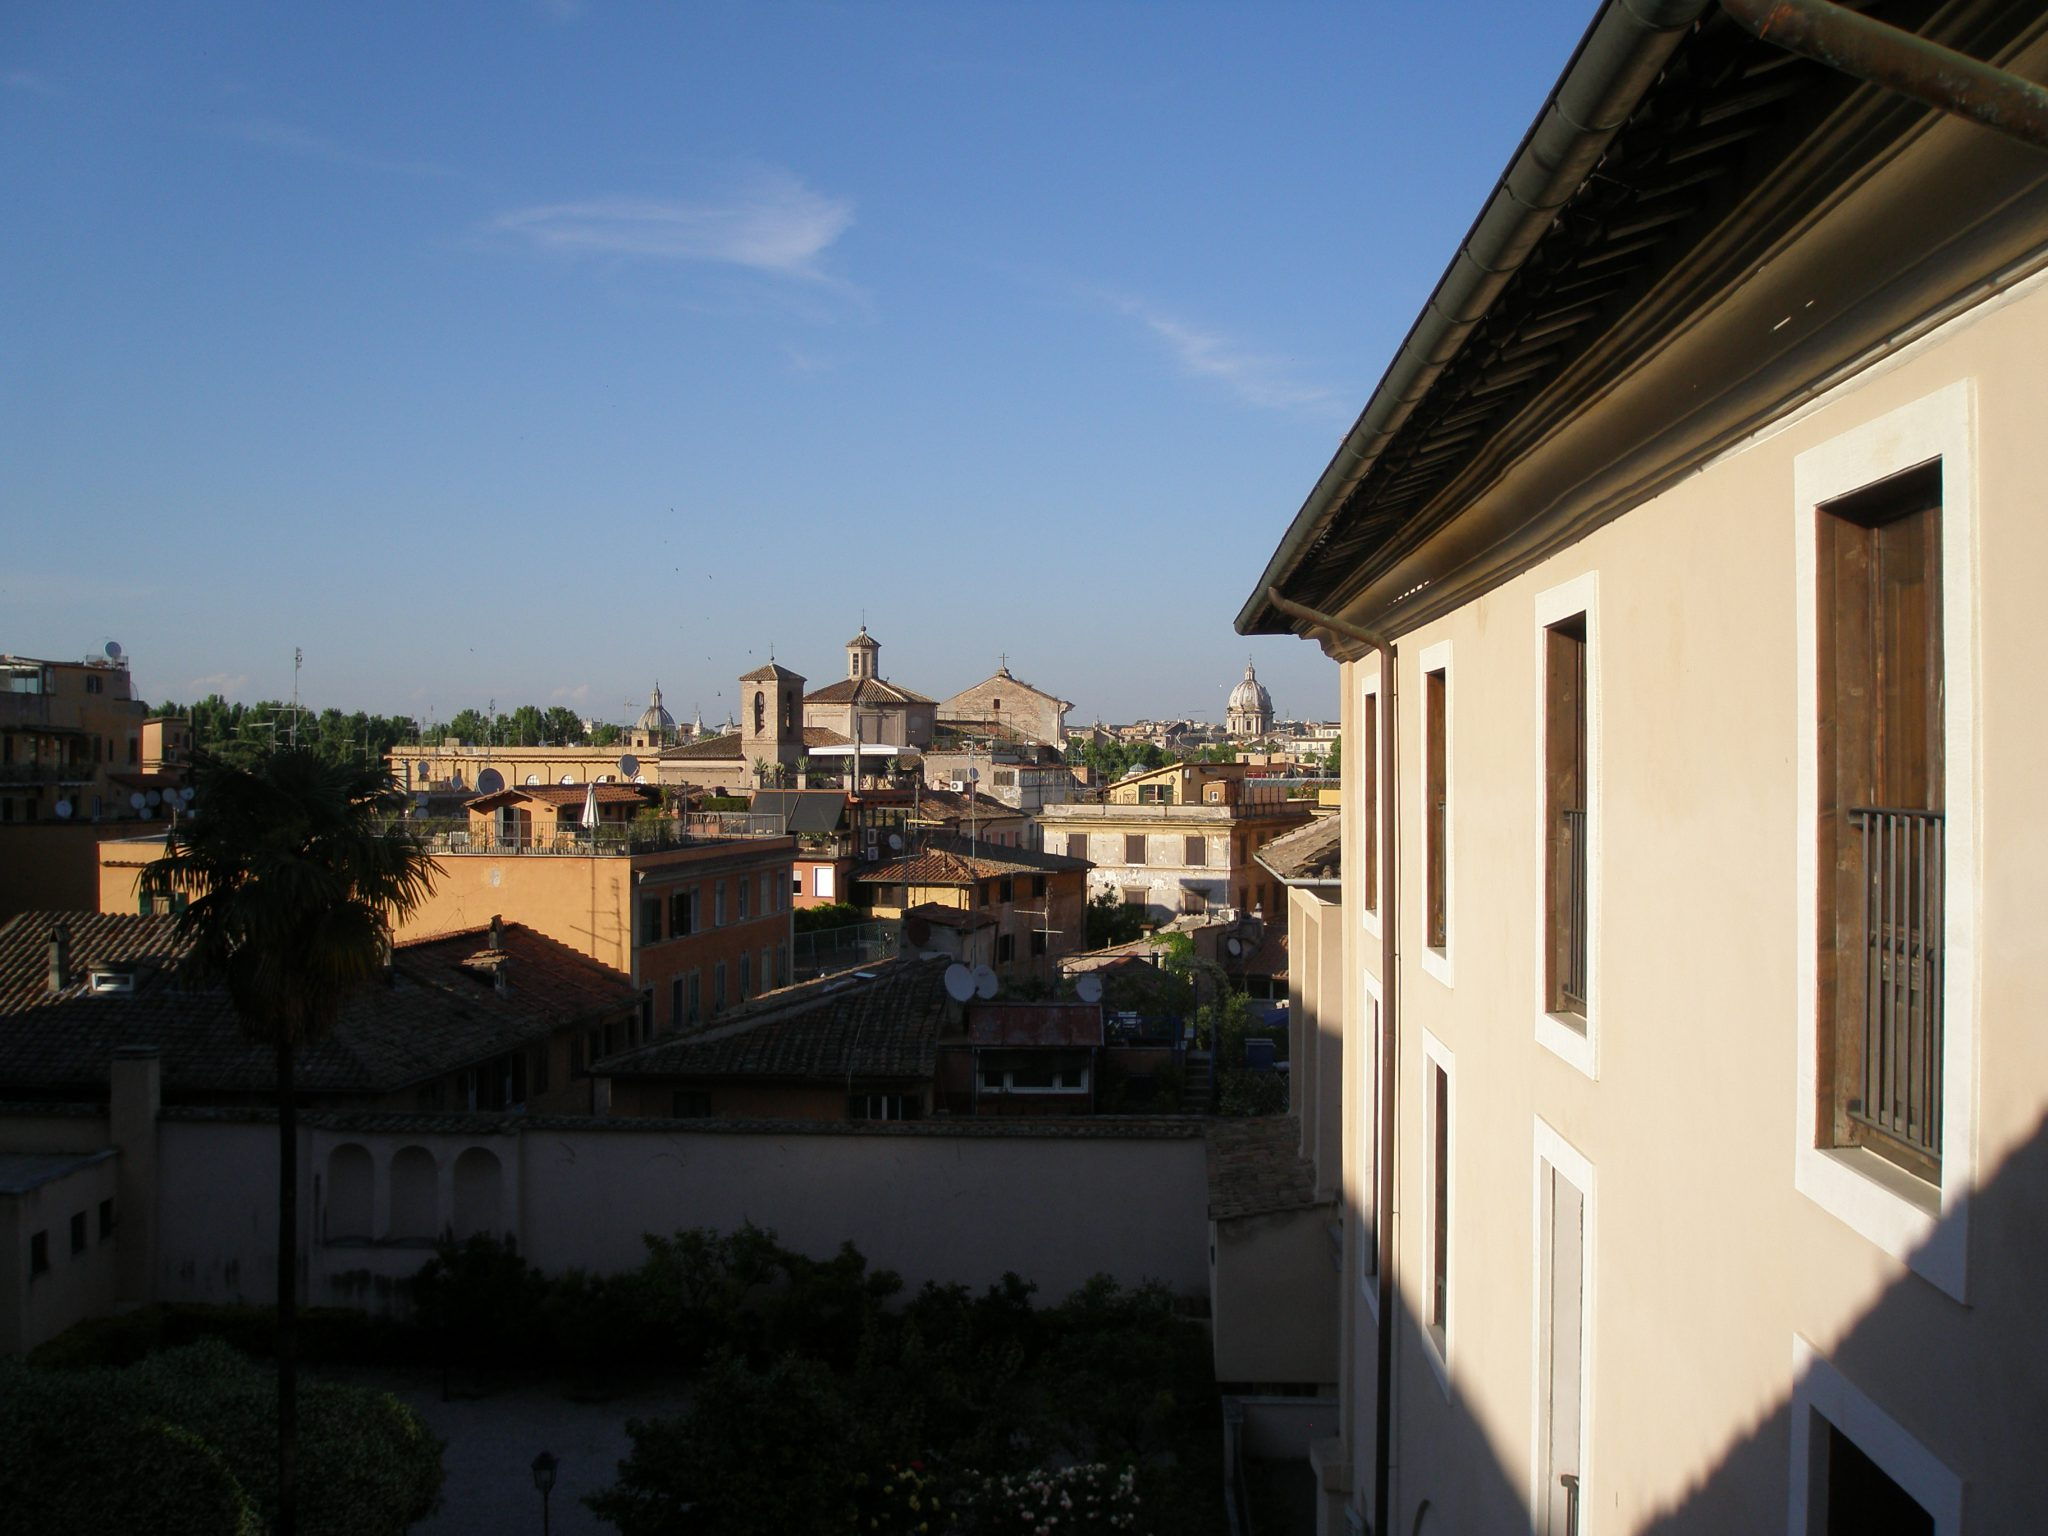 This was first view of Trastevere, from my room, on May 9th, in the late afternoon.